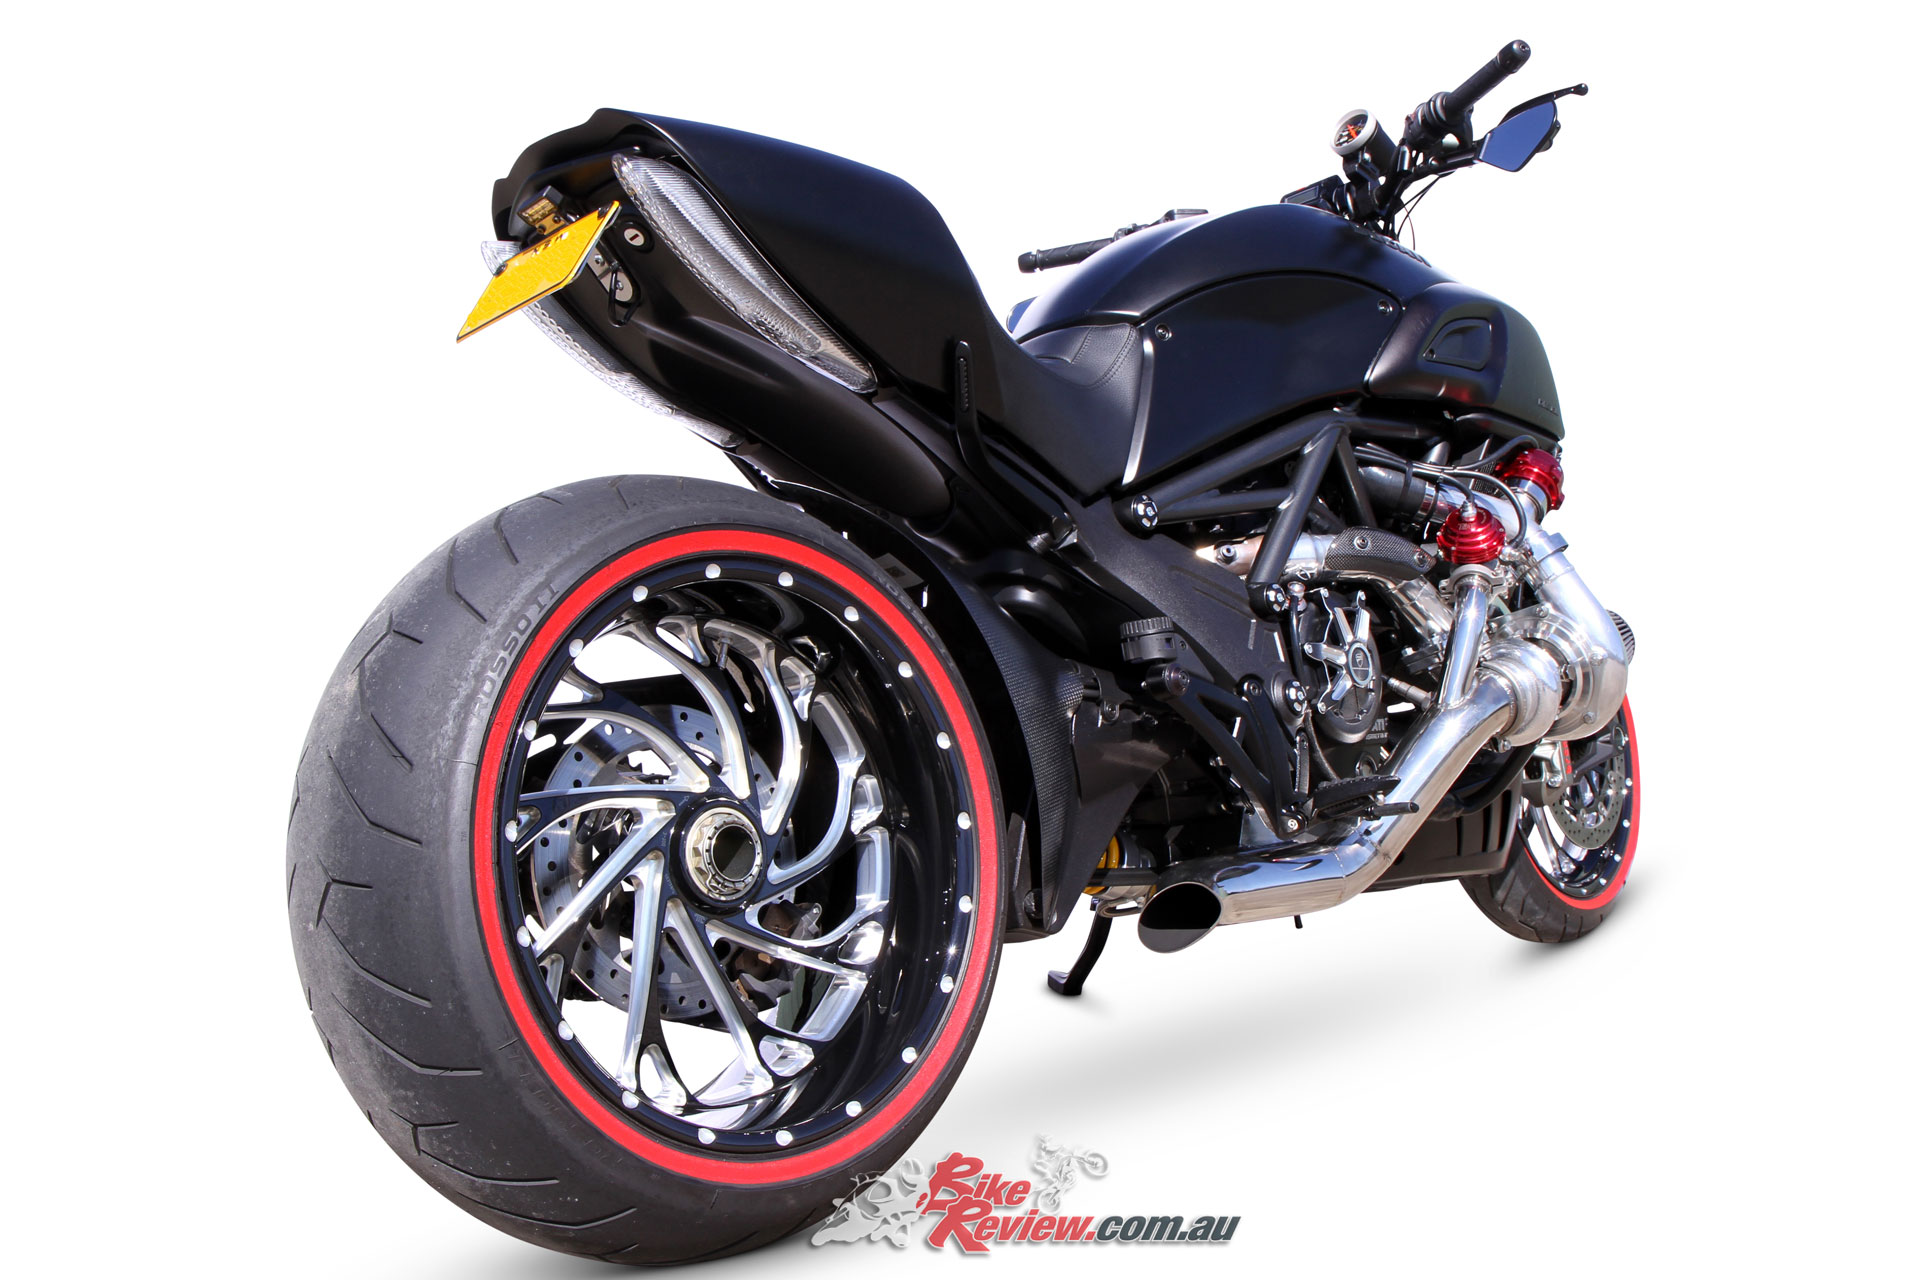 custom turbo 39 d super cruiser ducati diavel bike review. Black Bedroom Furniture Sets. Home Design Ideas